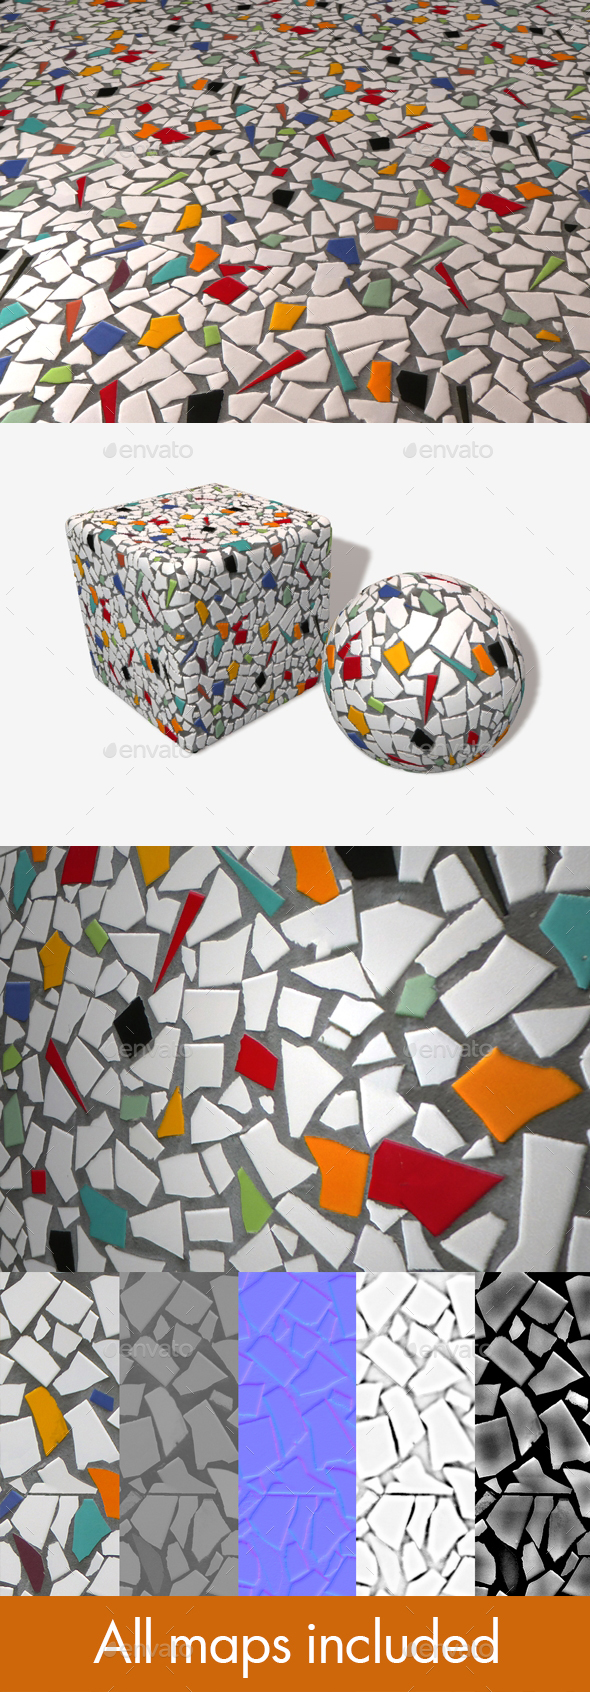 Cracked Mosaic Tile Seamless Texture - 3DOcean Item for Sale